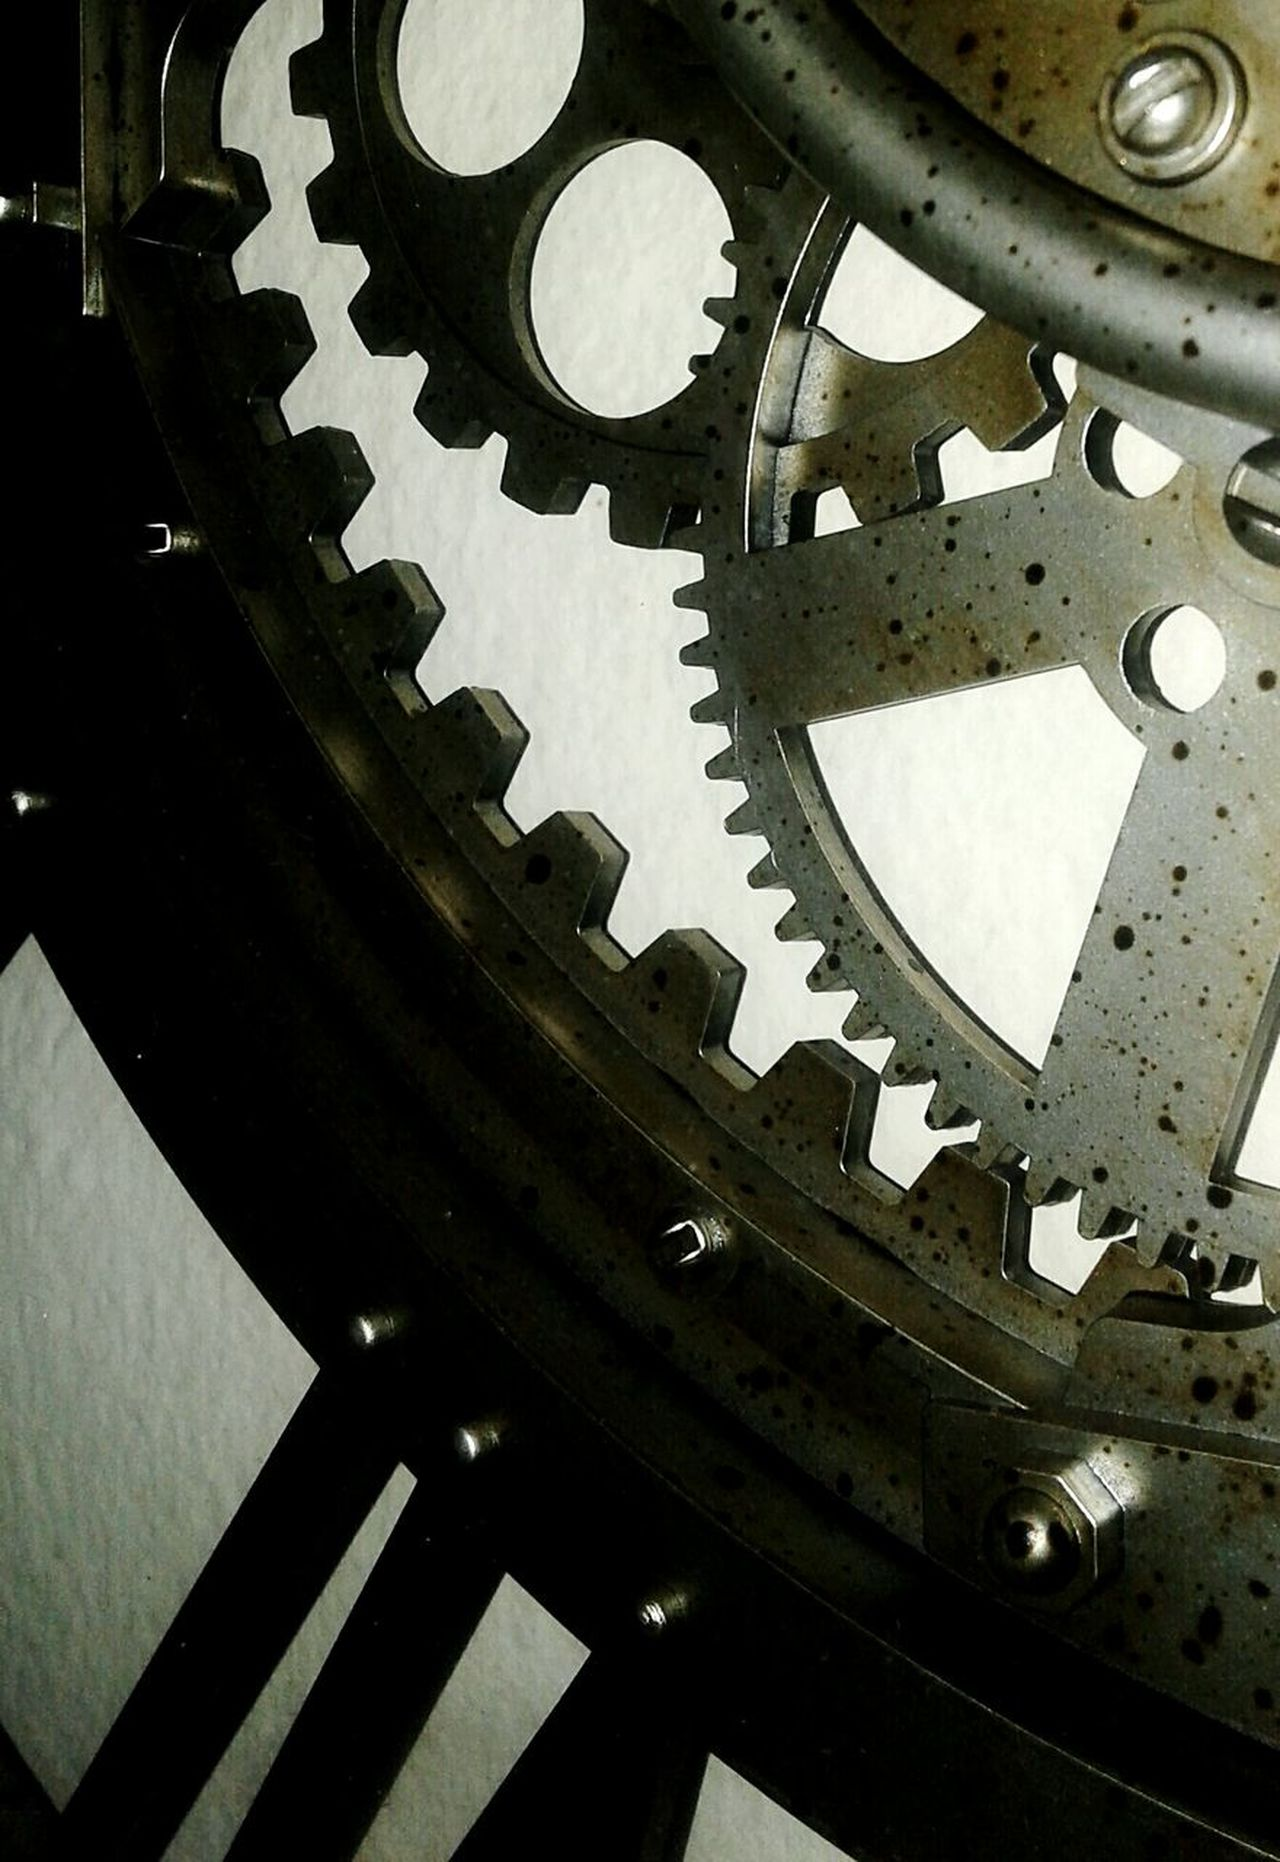 Close-up Clock Gear Indoors  Minute Hand Day Highlights Light And Shadow Gold Colored Shadows & Lights Abstract Photography Best New Photographers Relaxing EyeEmNewHere Sculpture Black Color Rustic Shadow Technology Mechanics Edges Corner Turn Vintage Tick Tock Tick... Tock